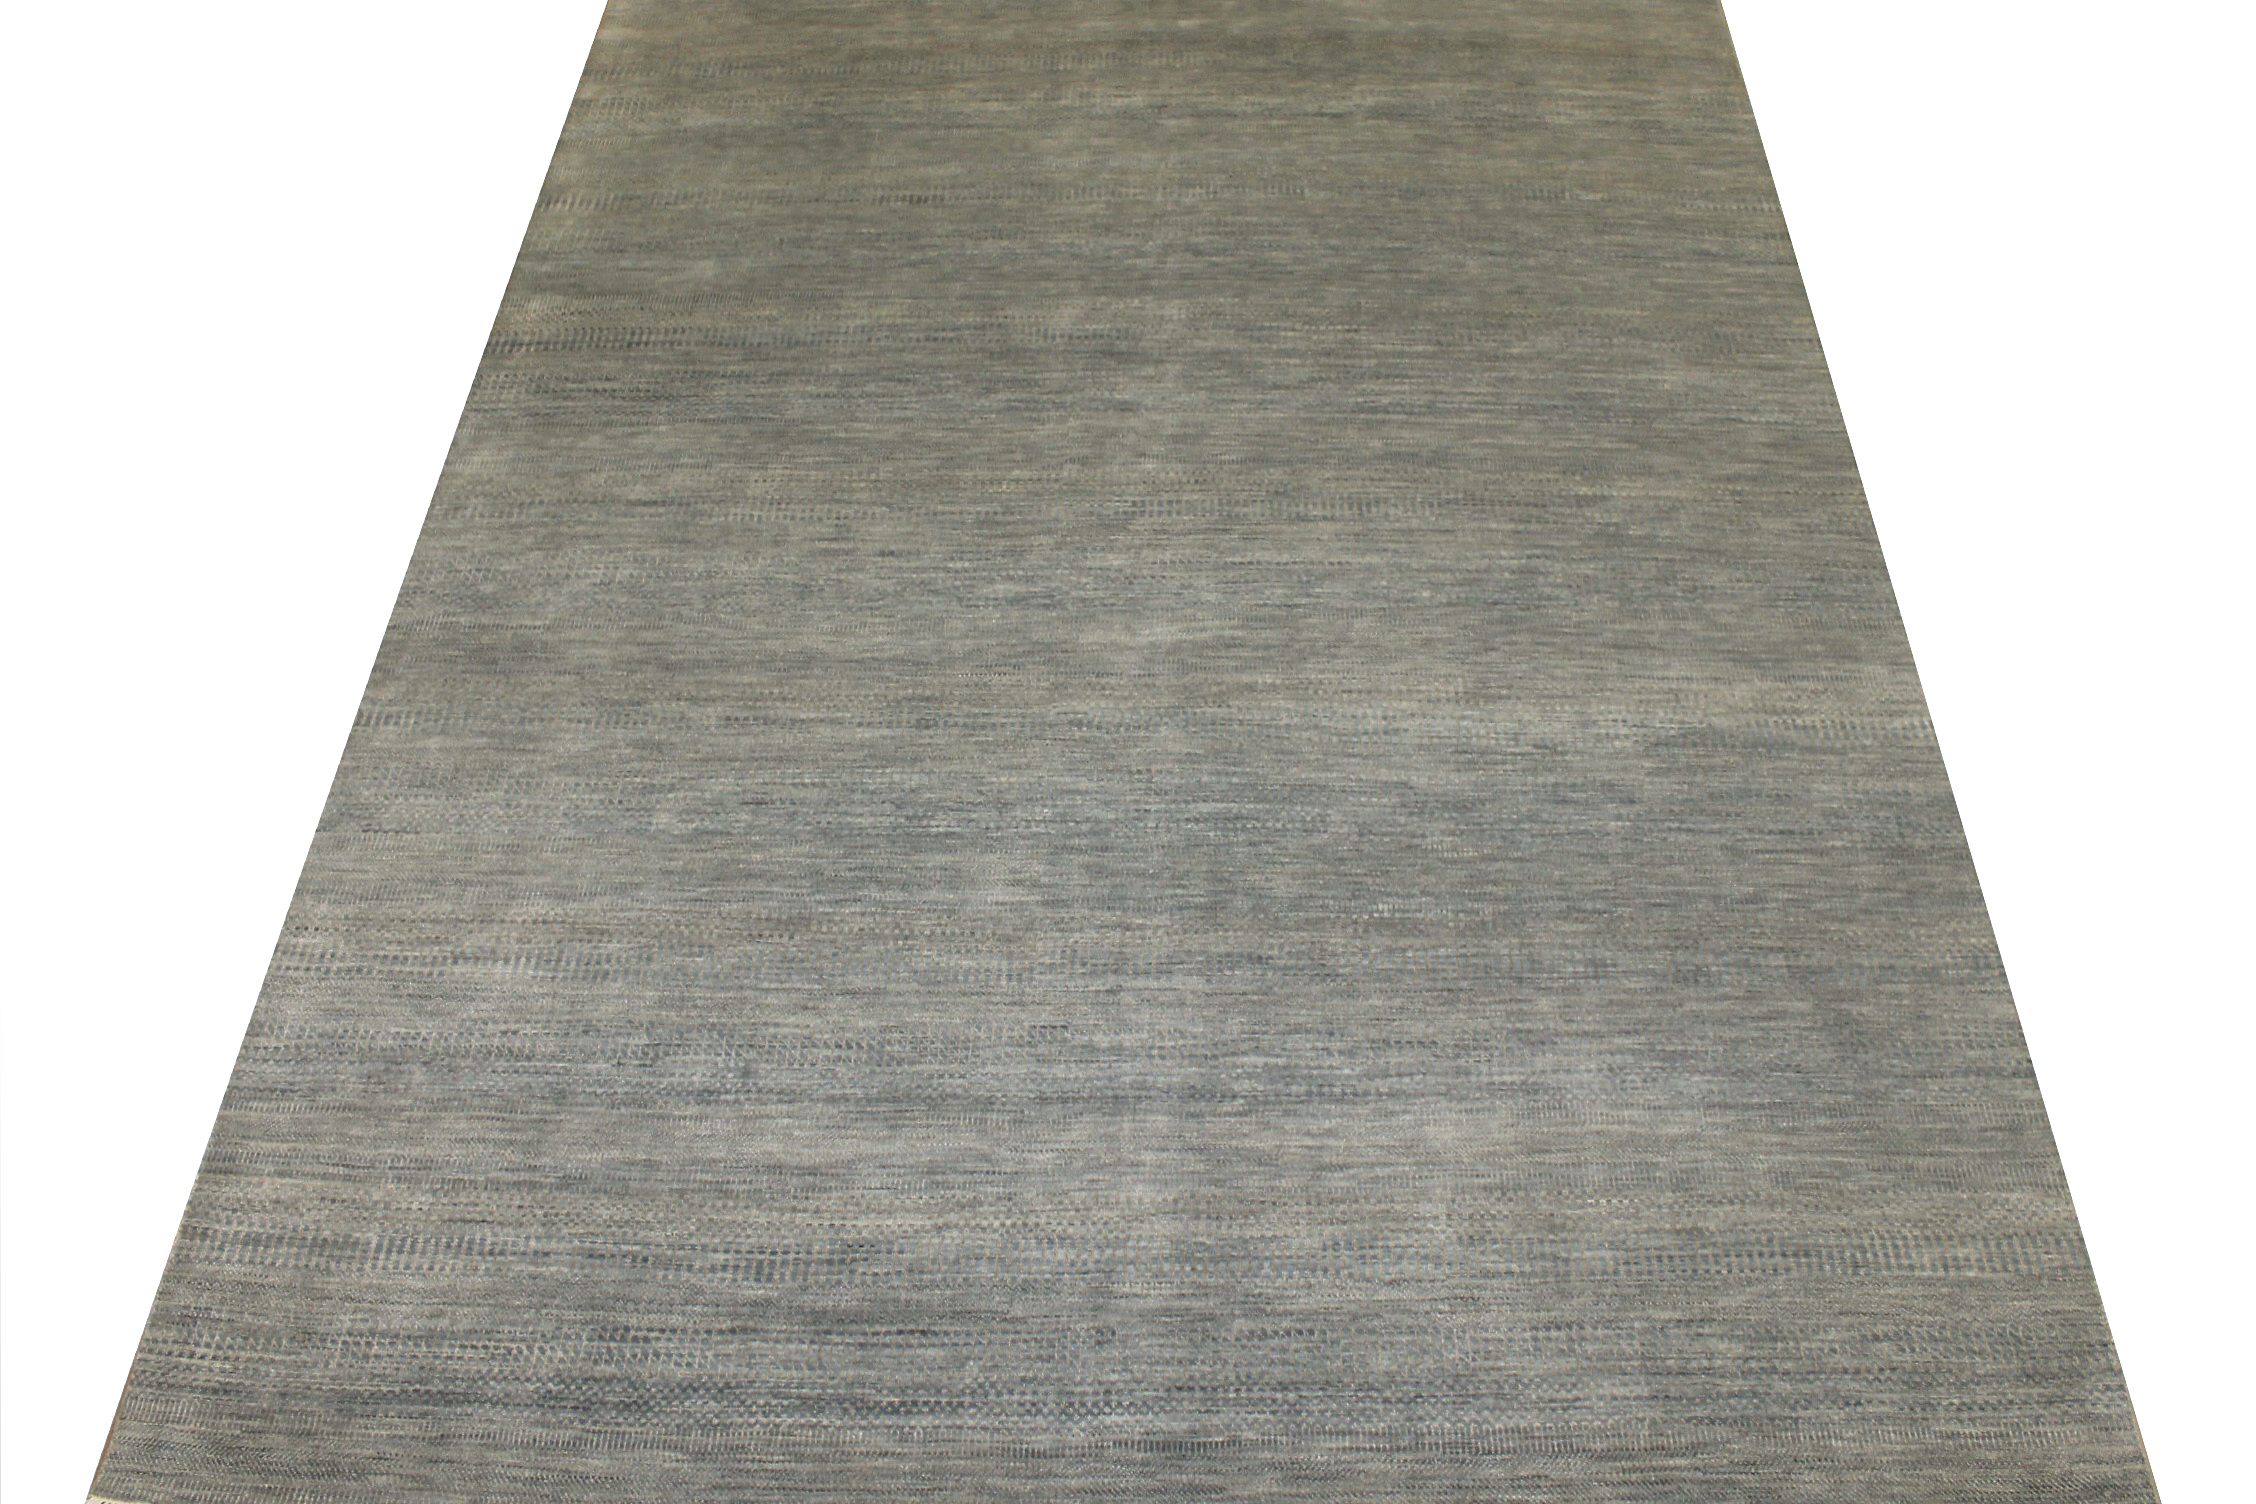 9x12 Casual Hand Knotted Wool & Bamboo Silk Area Rug - MR024860